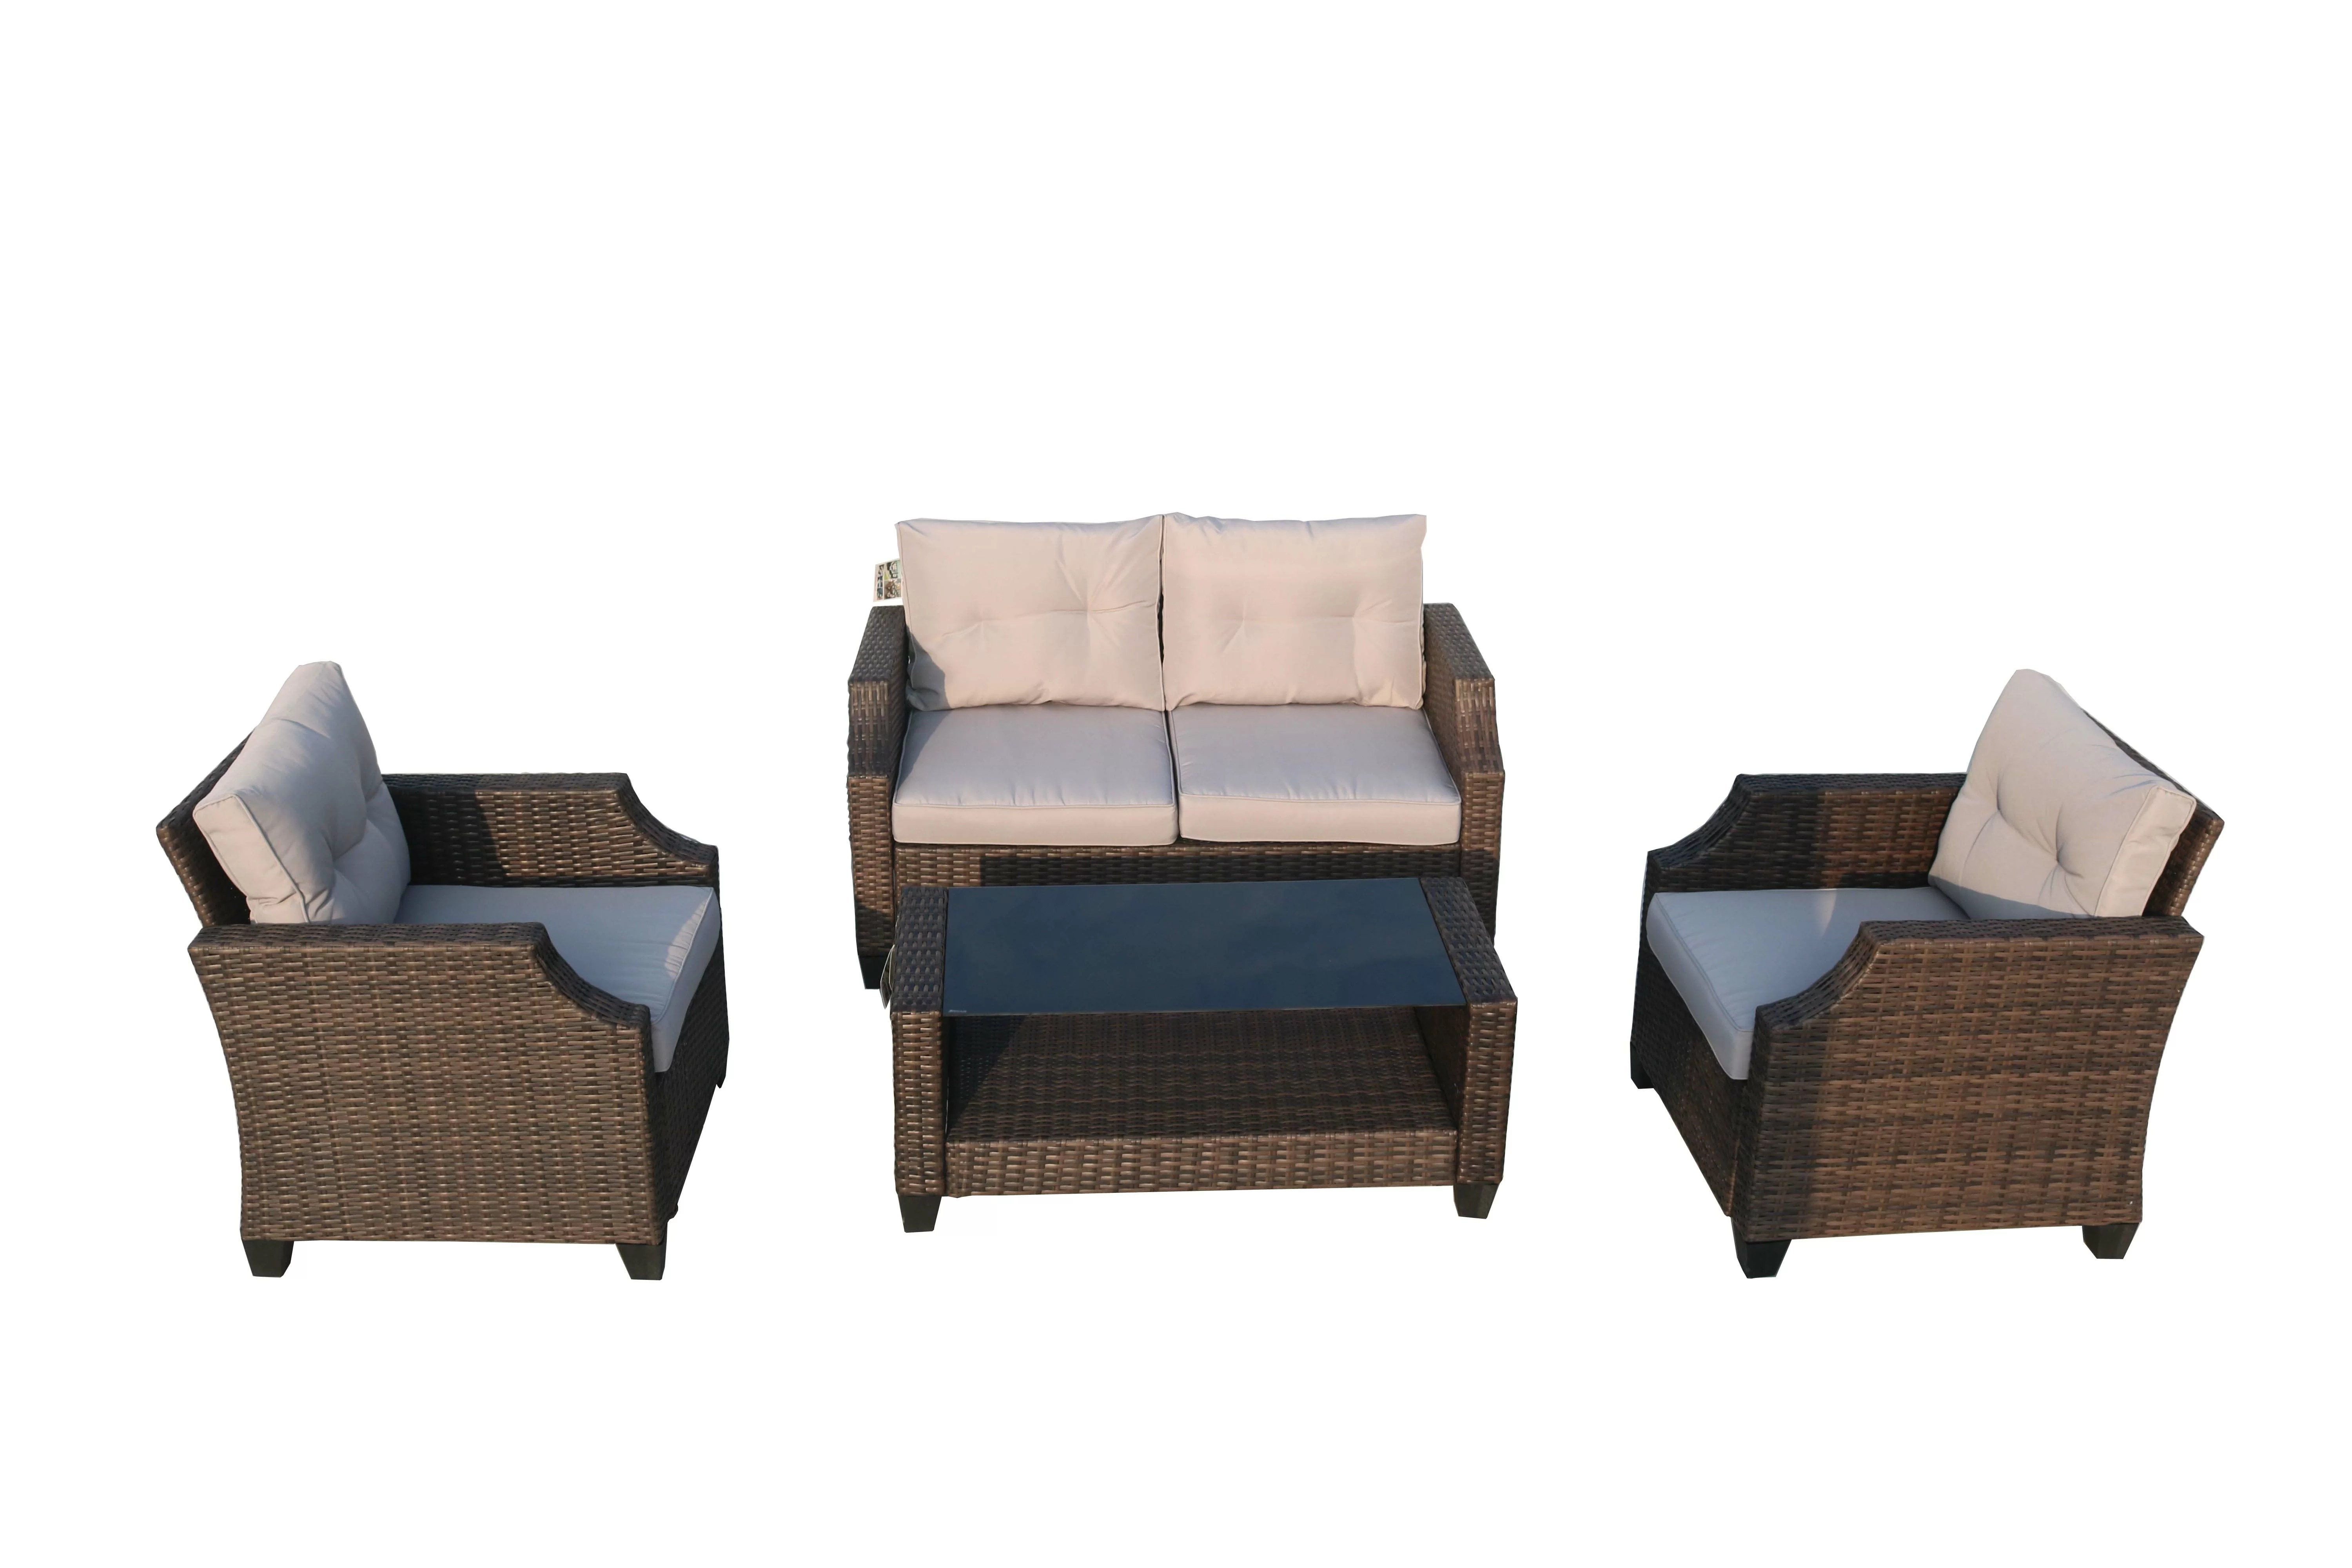 Rattan Sofa Colne 4 Piece Rattan Sofa Seating Group With Cushions